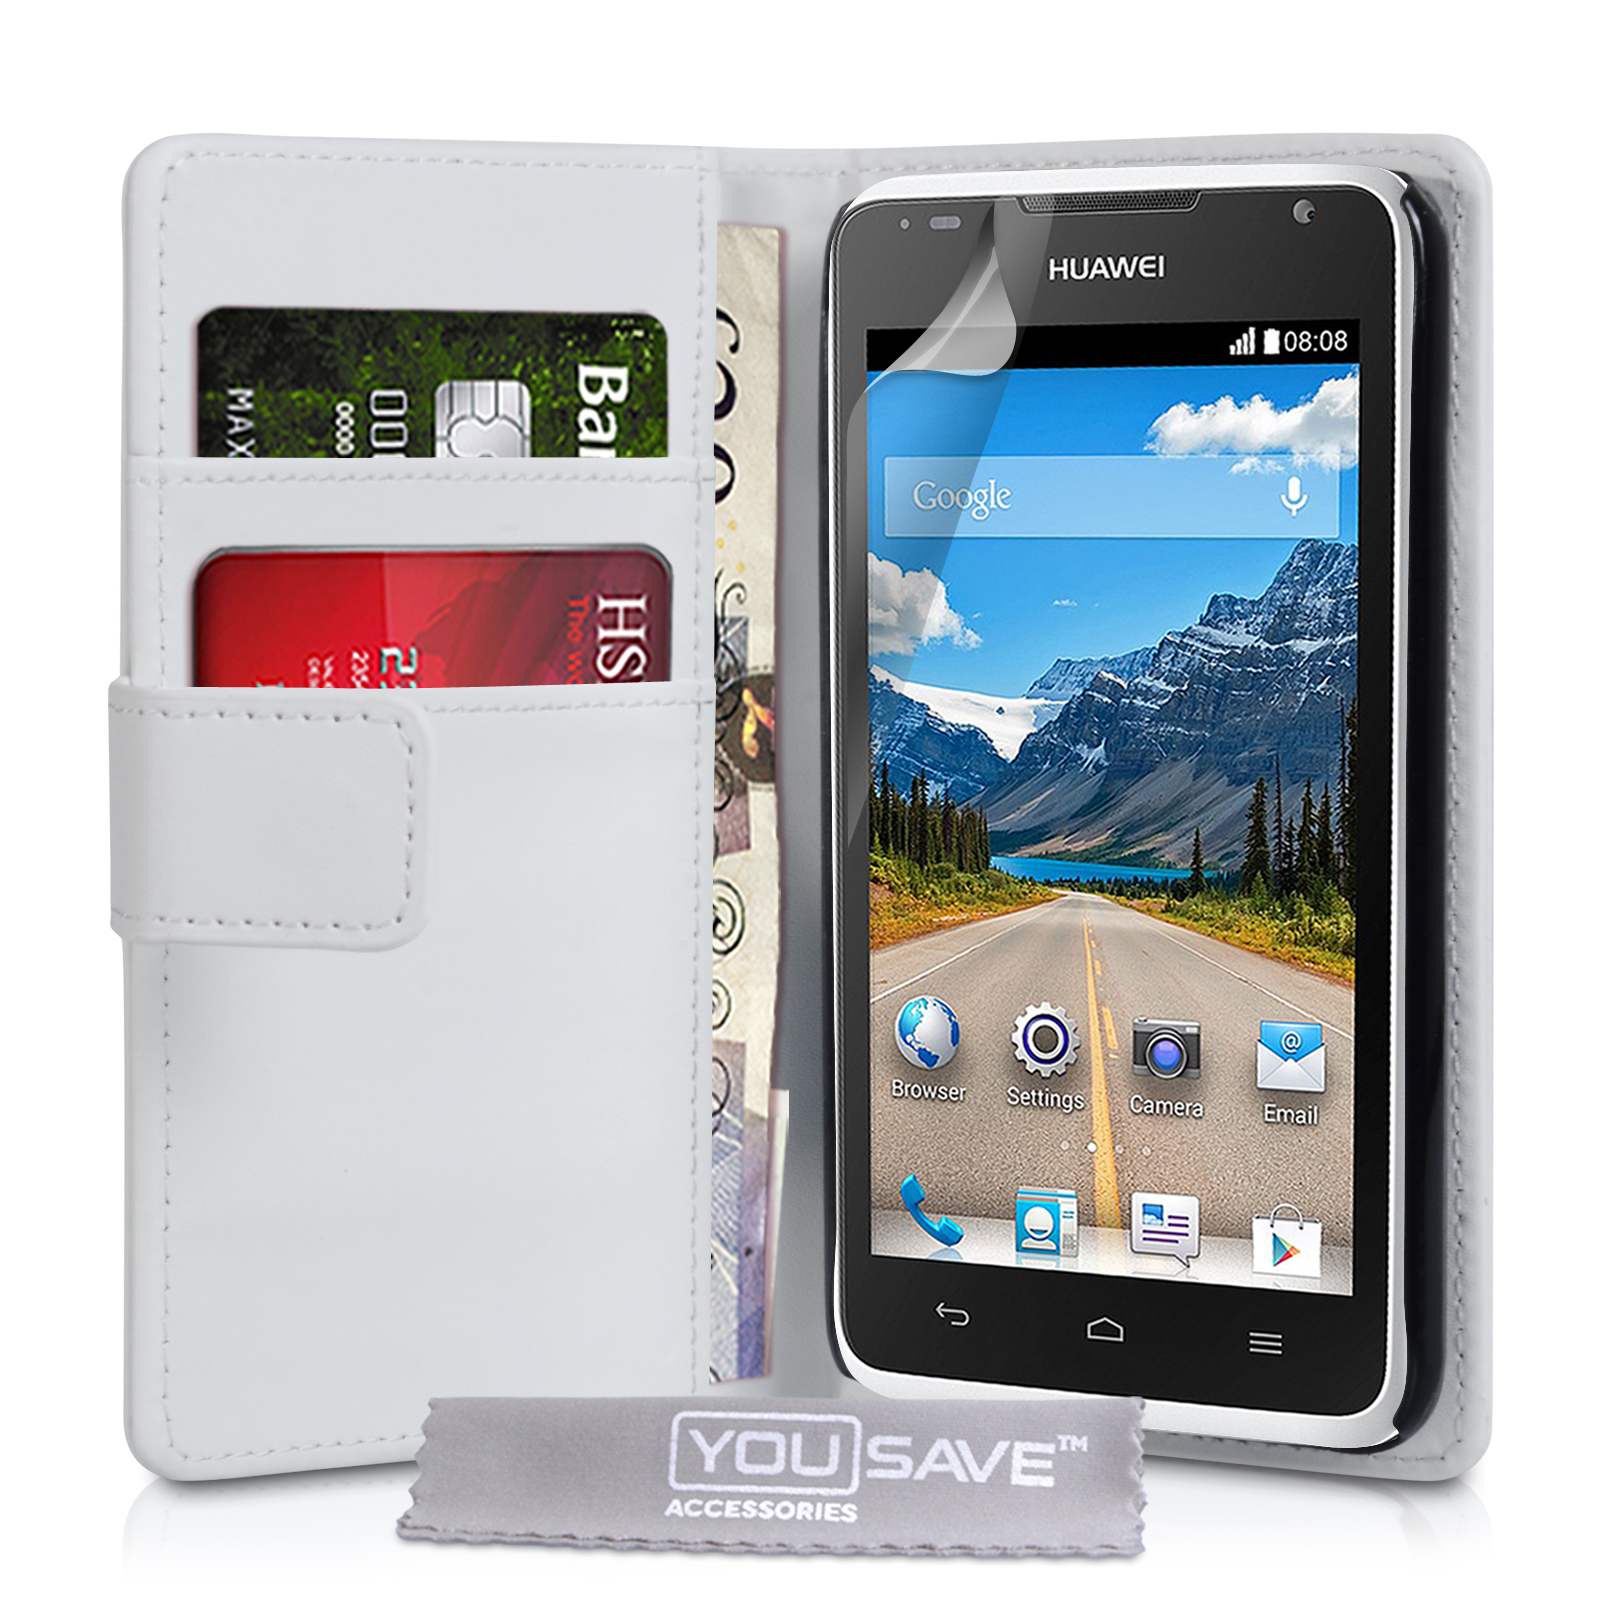 YouSave Accessories Huawei Ascend Y530 Leather Effect Wallet